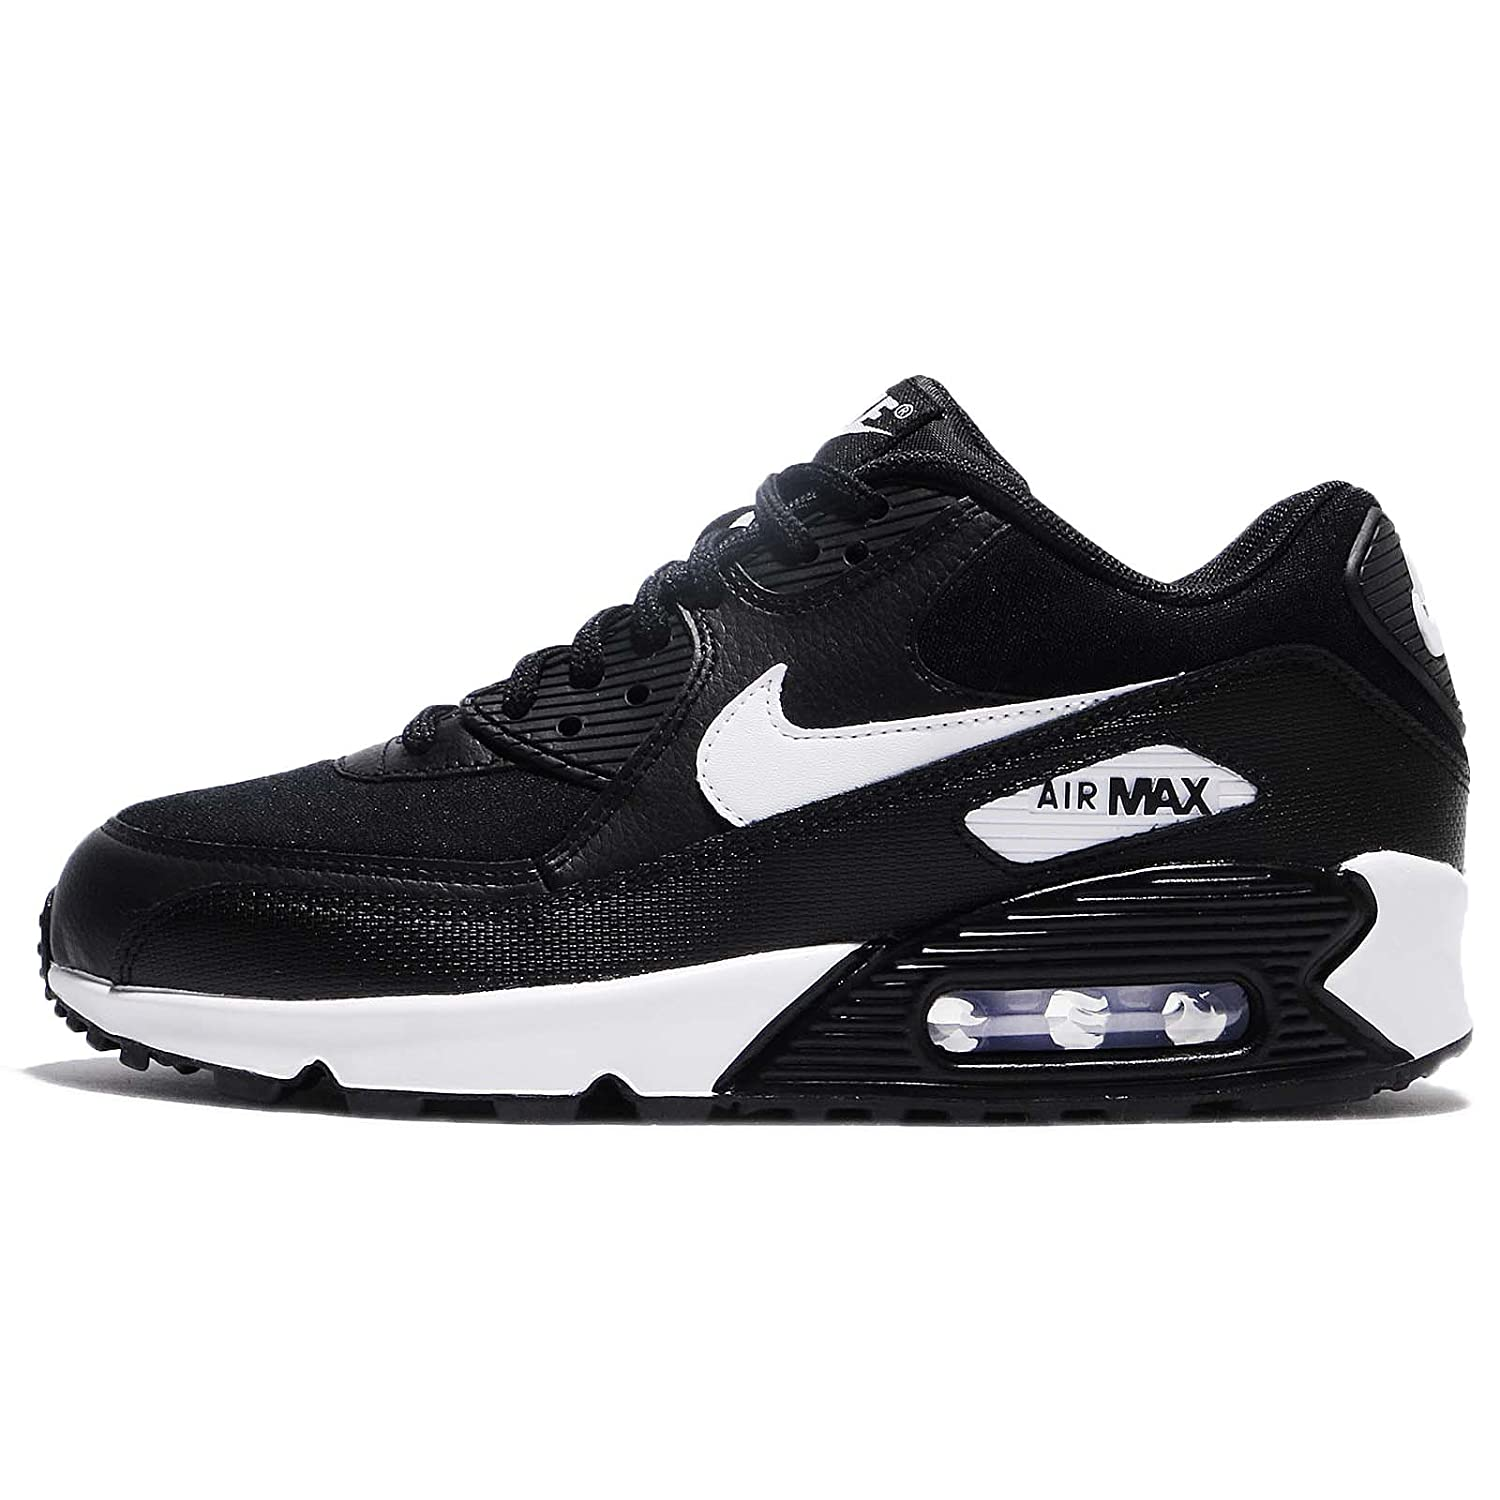 [ナイキ] B07LGY2XMP BLACK/WHITE エア マックス 90 28.0 レディース ランニング シューズ Air Max 90 325213-047 [並行輸入品] B07LGY2XMP BLACK/WHITE 28.0 cm 28.0 cm|BLACK/WHITE, 美作町:acc5d462 --- mail.guidewayfinancialservices.com.au